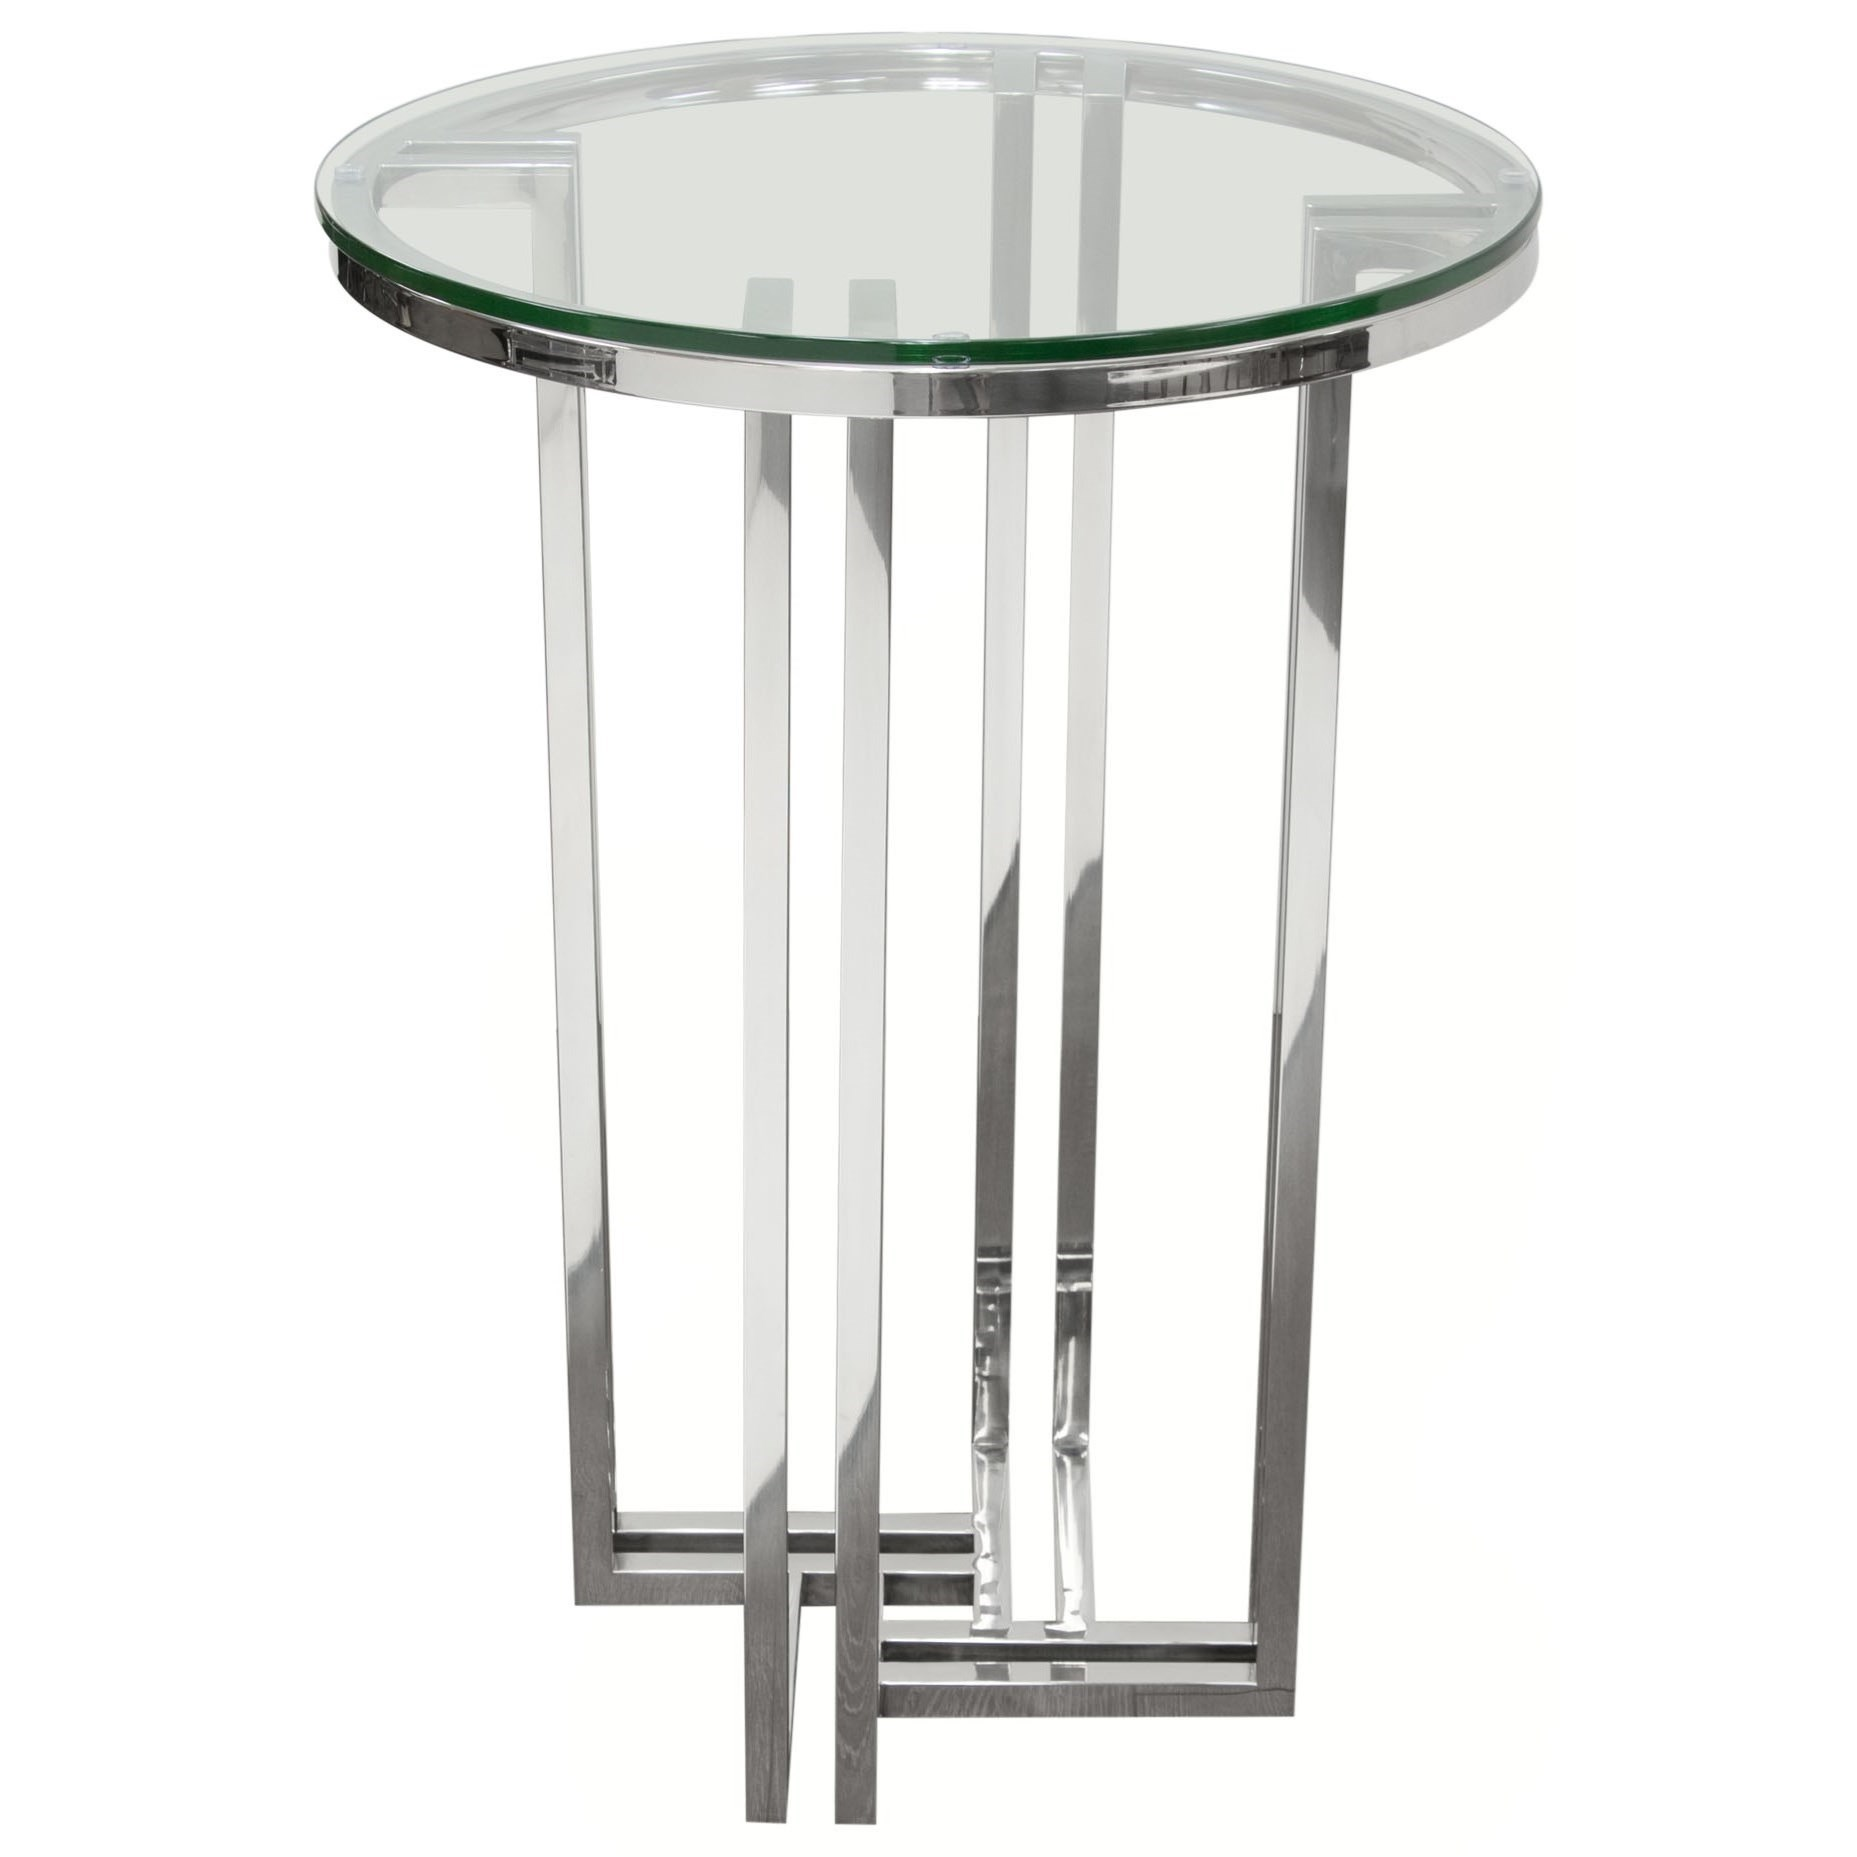 Round Glass Top End Tables Diamond Sofa Deko Dekodess Stainless Steel Round Accent